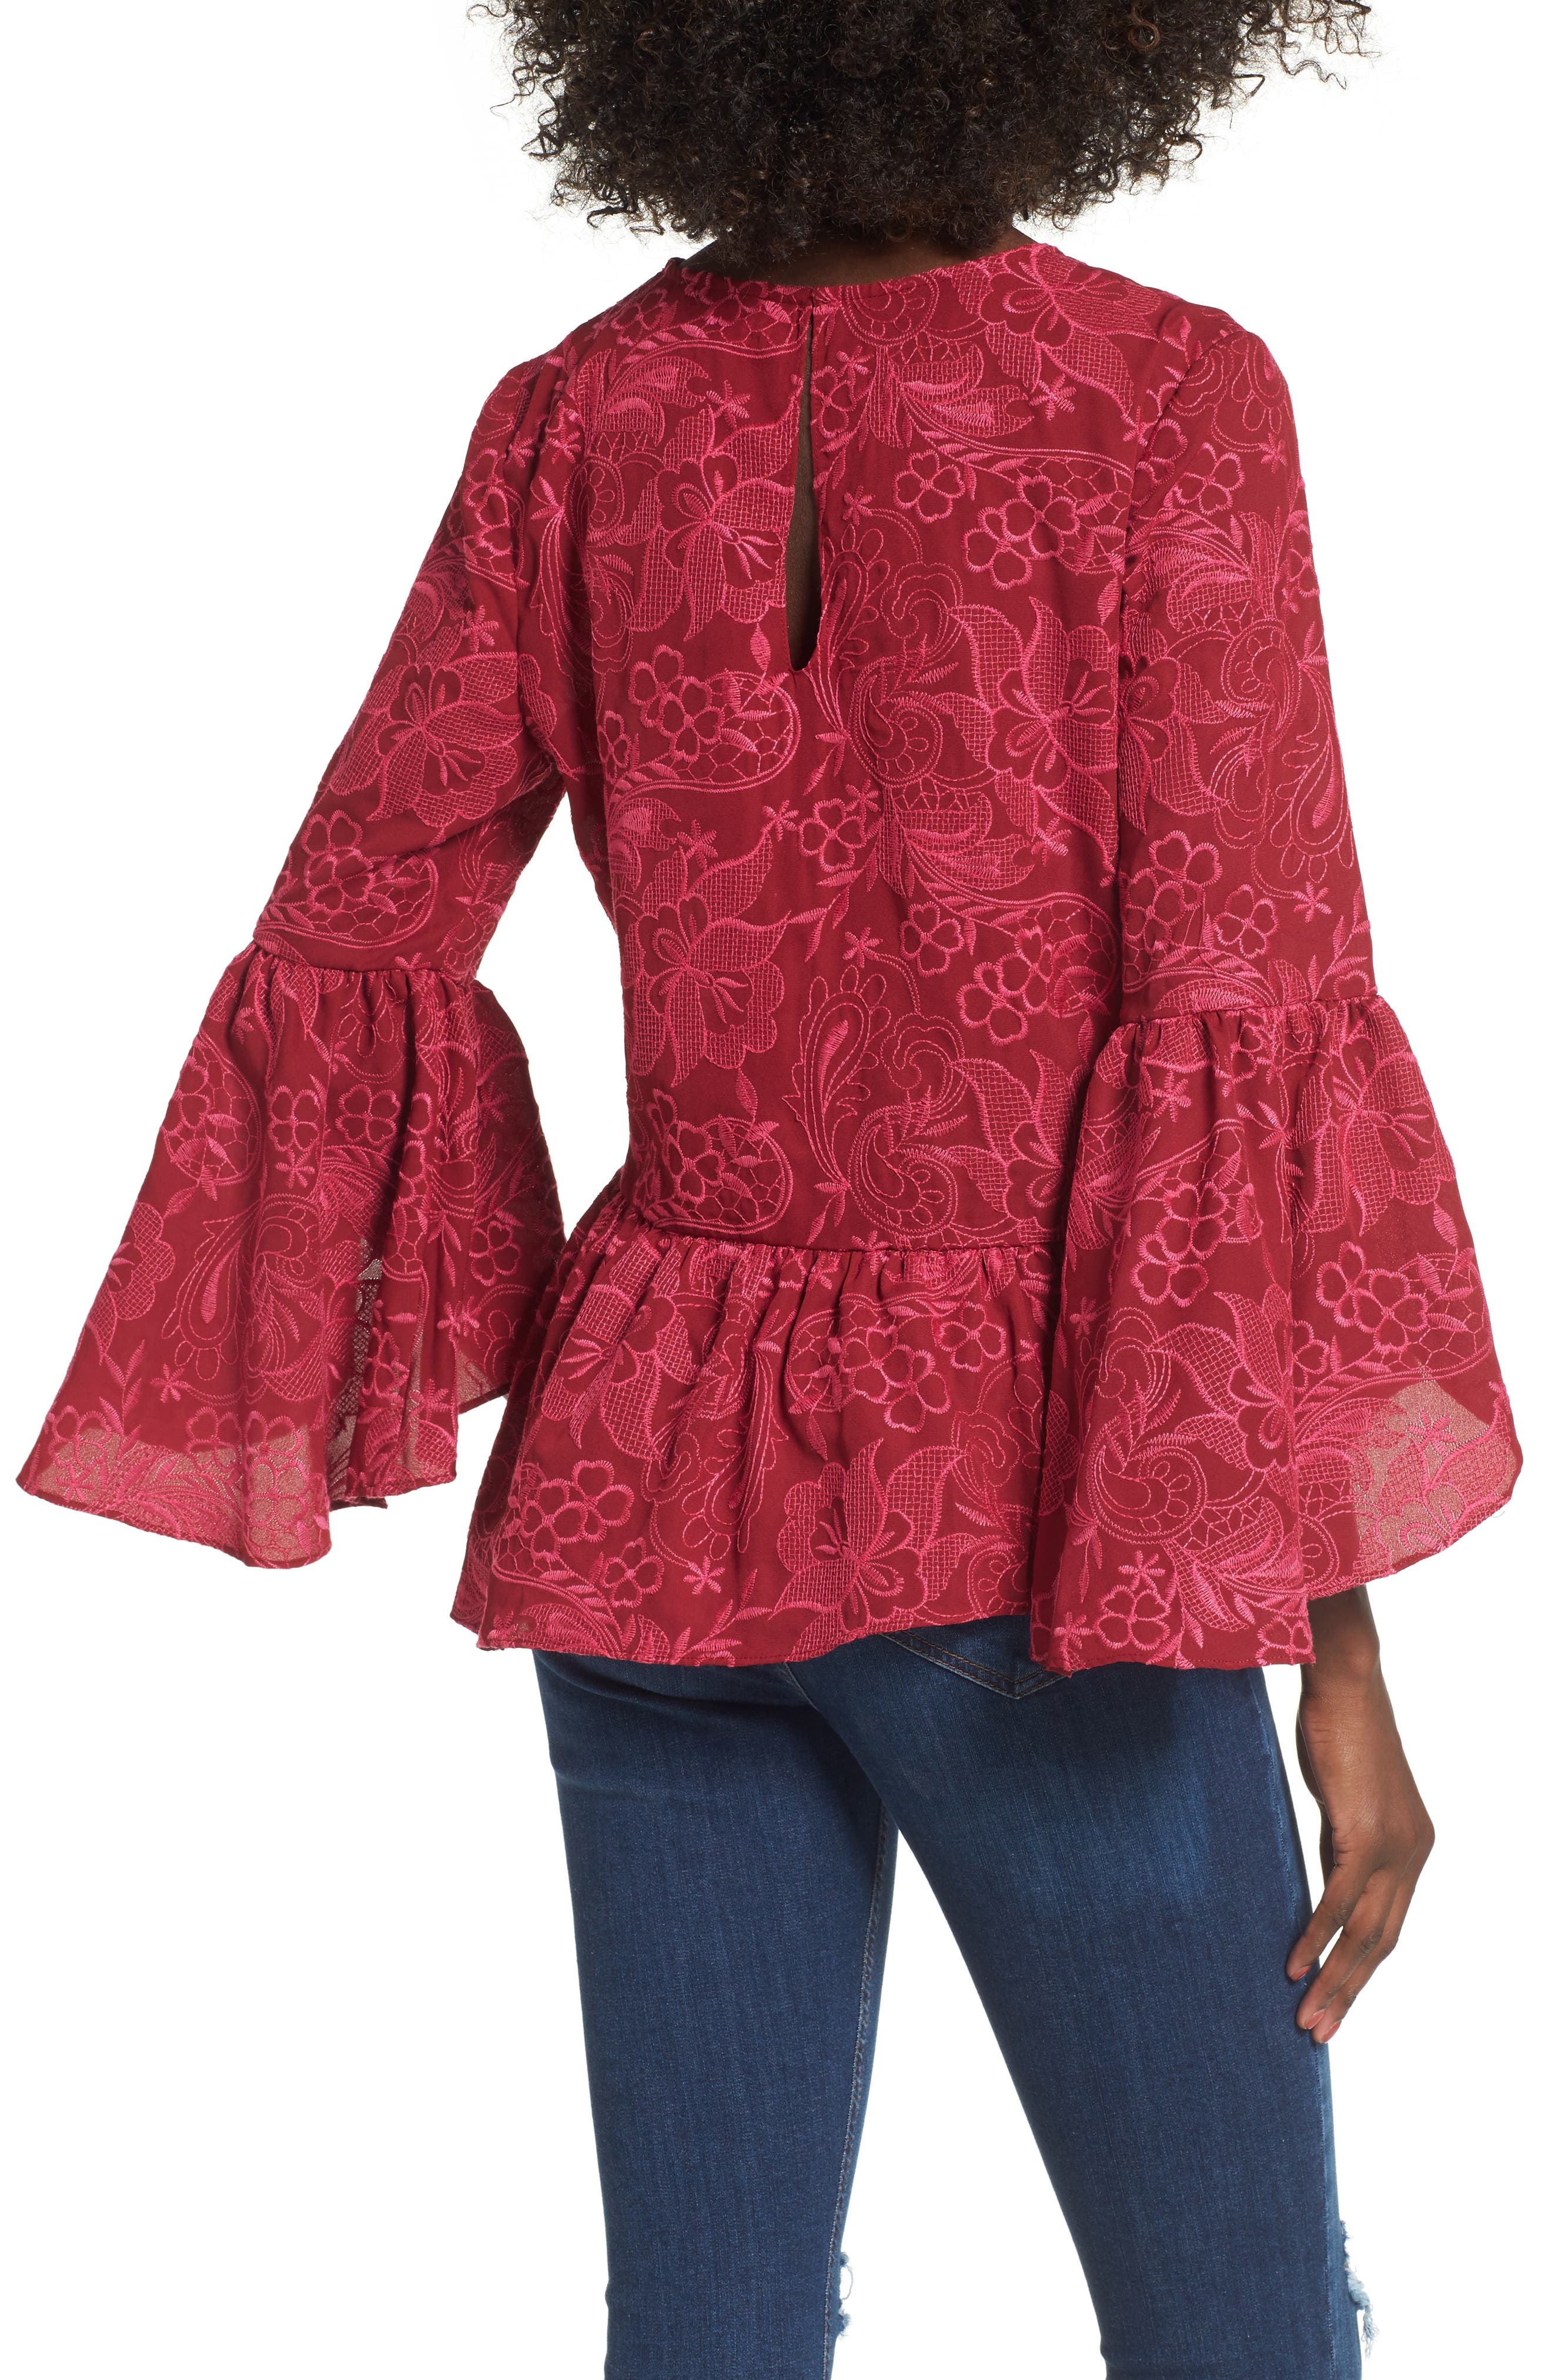 Helena Lace Bell Sleeve Top,                             Alternate thumbnail 2, color,                             400